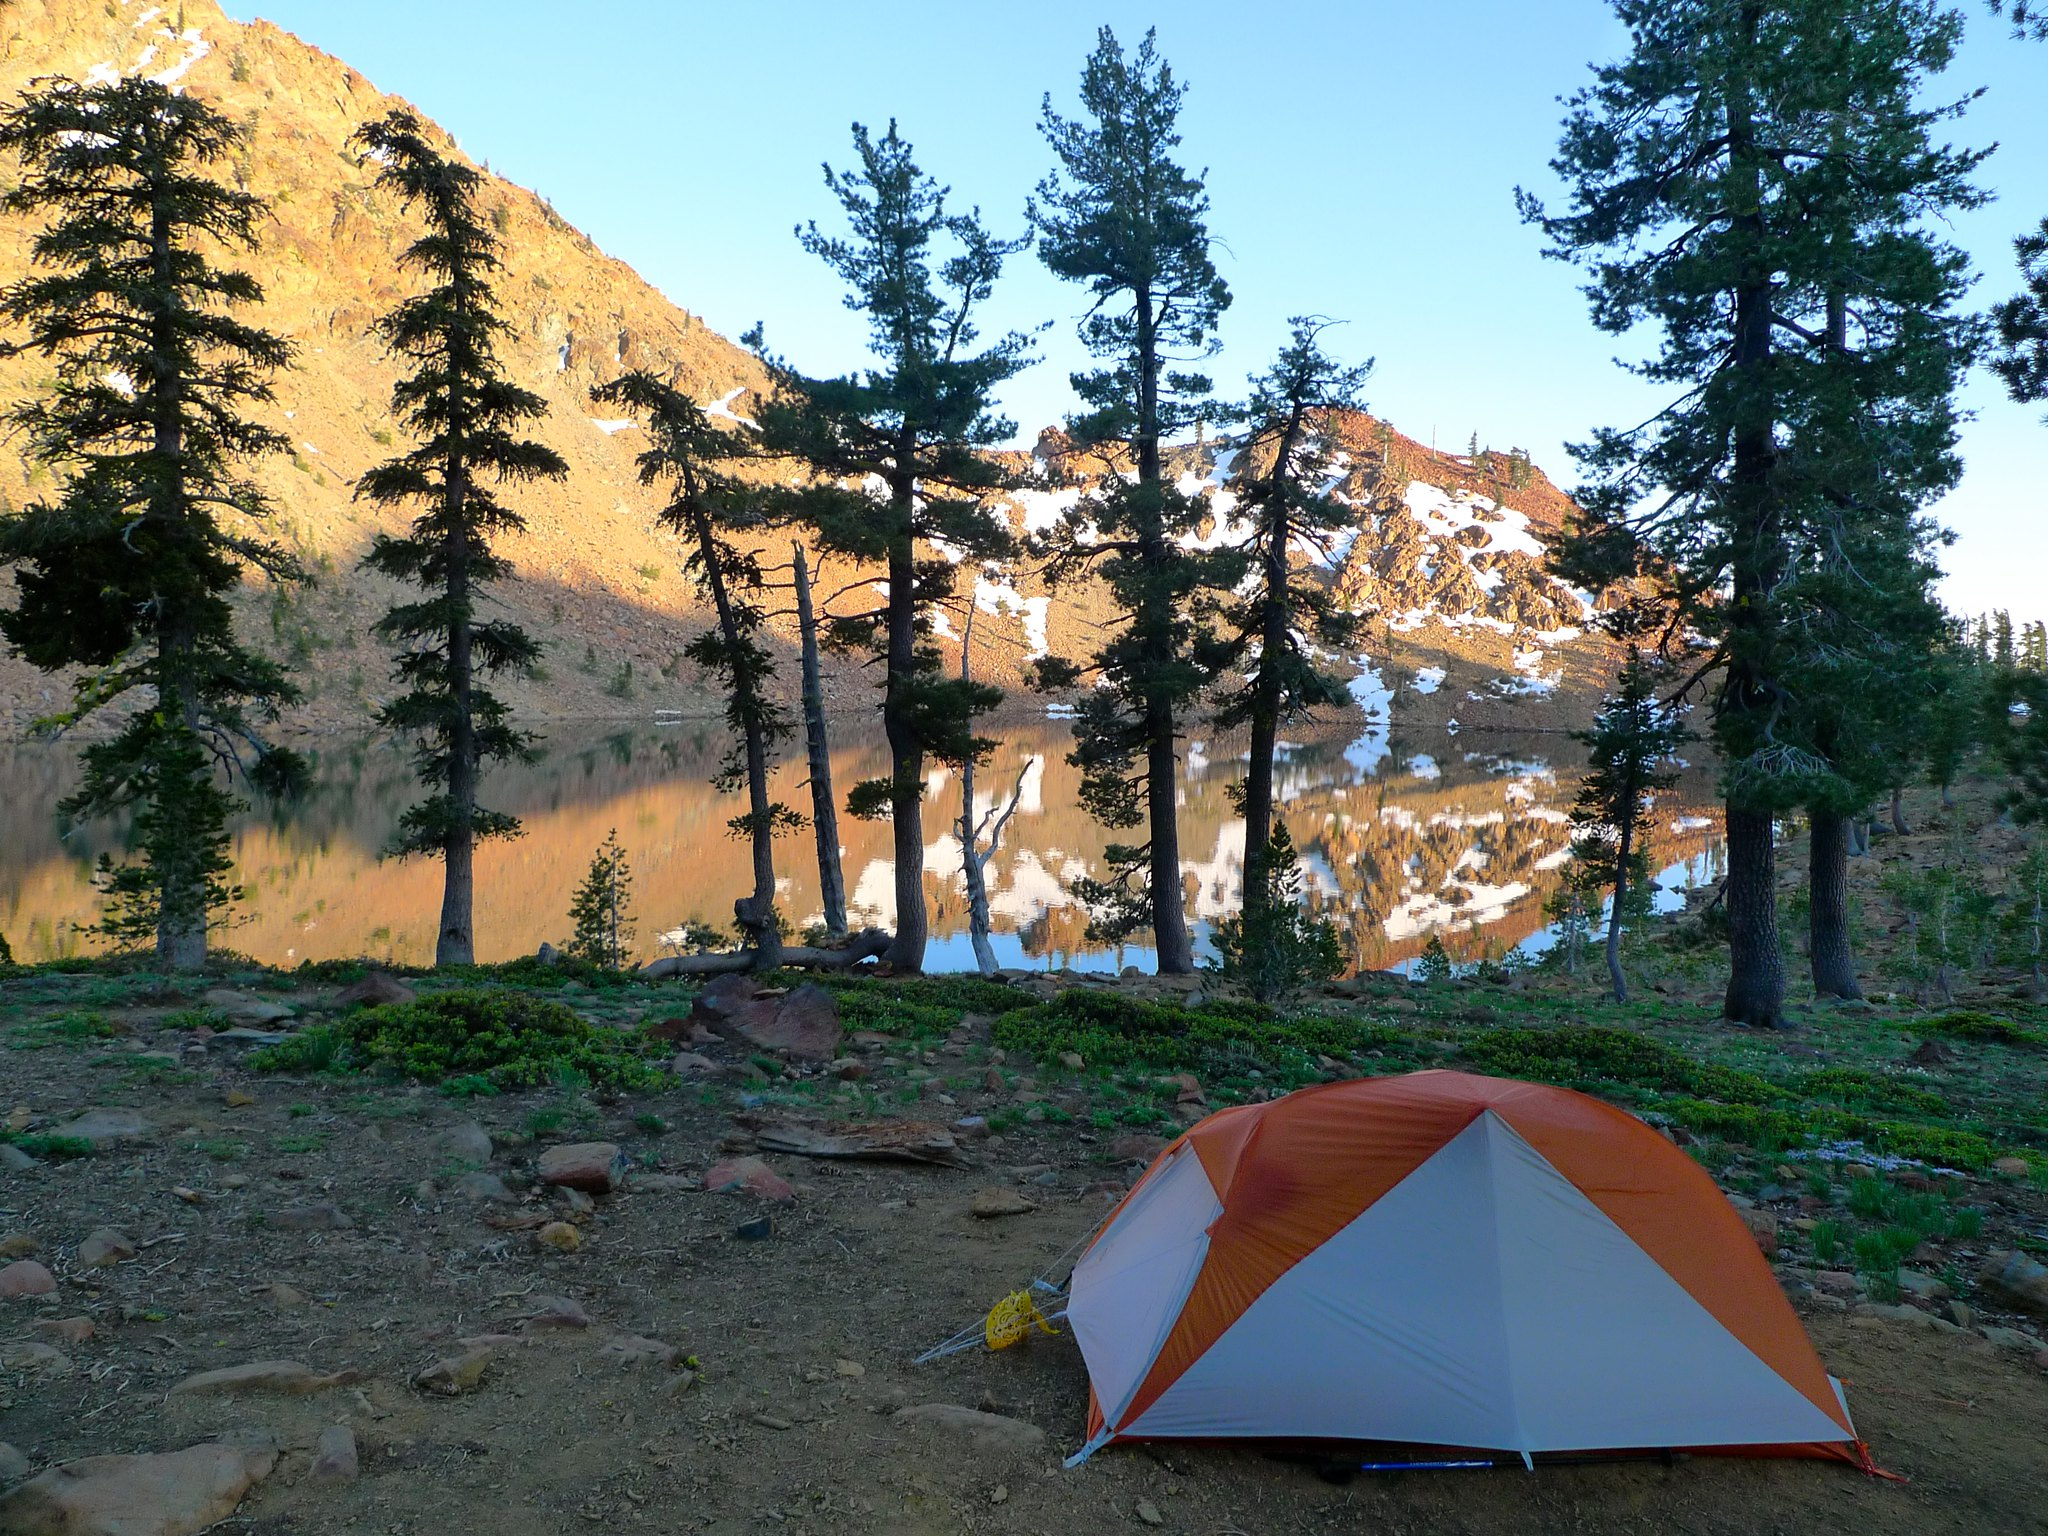 The pee bandana flying triumphantly on my tent guy lines in the Trinity Alps